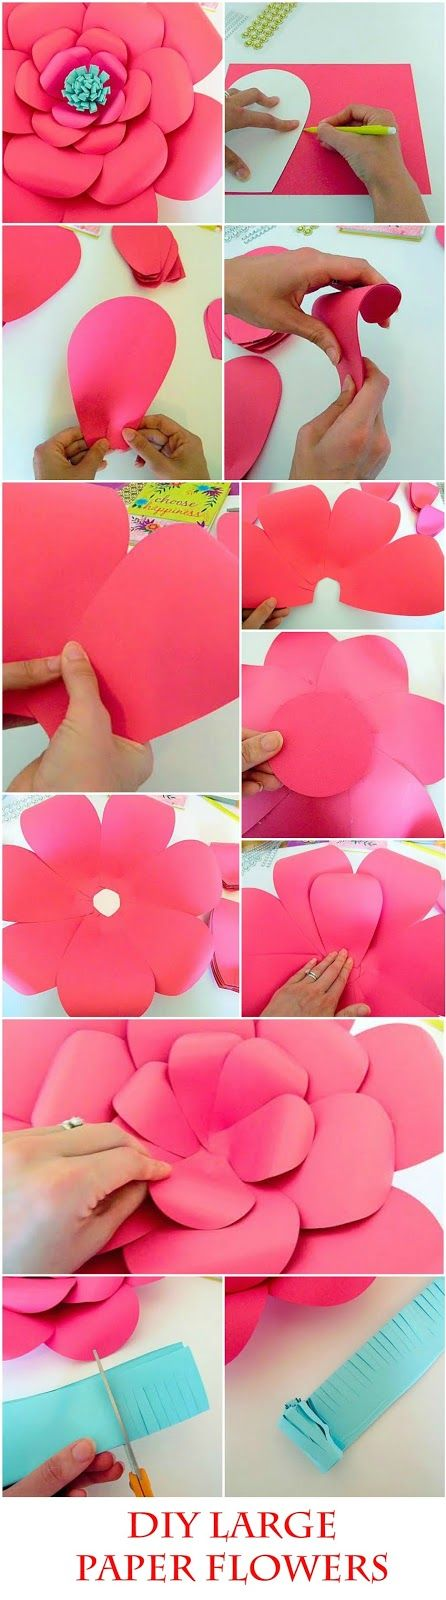 Mamas gone crafty easy method when building any diy giant paper diy giant paper flower templates tutorial diy paper flower making kit svg paper flower cutting files large backdrop flowers mightylinksfo Choice Image